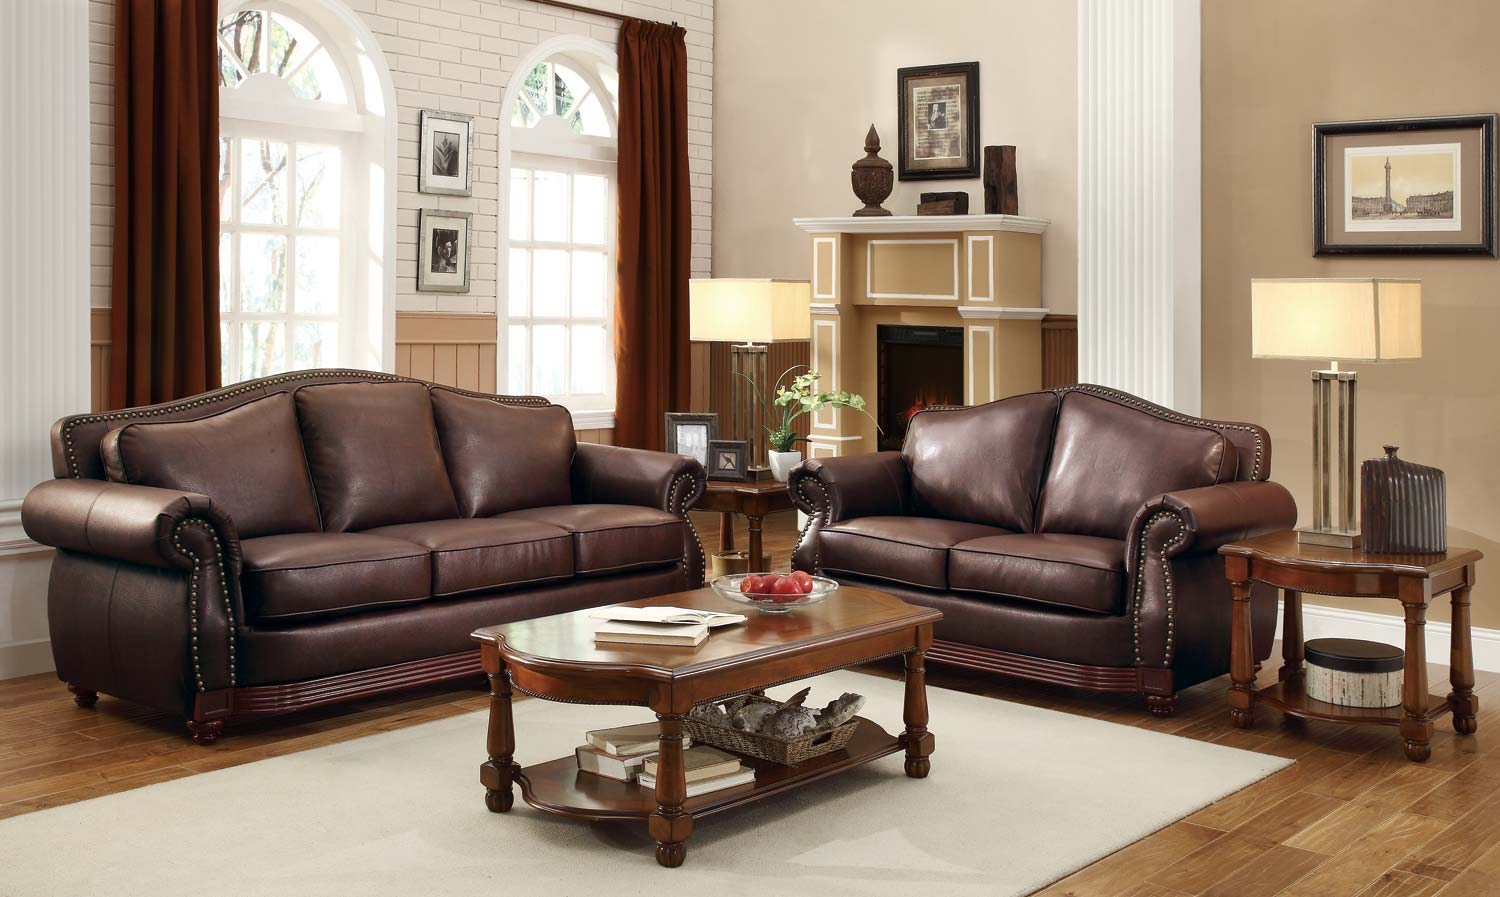 Homelegance Midwood Bonded Leather Sofa Collection Dark Brown